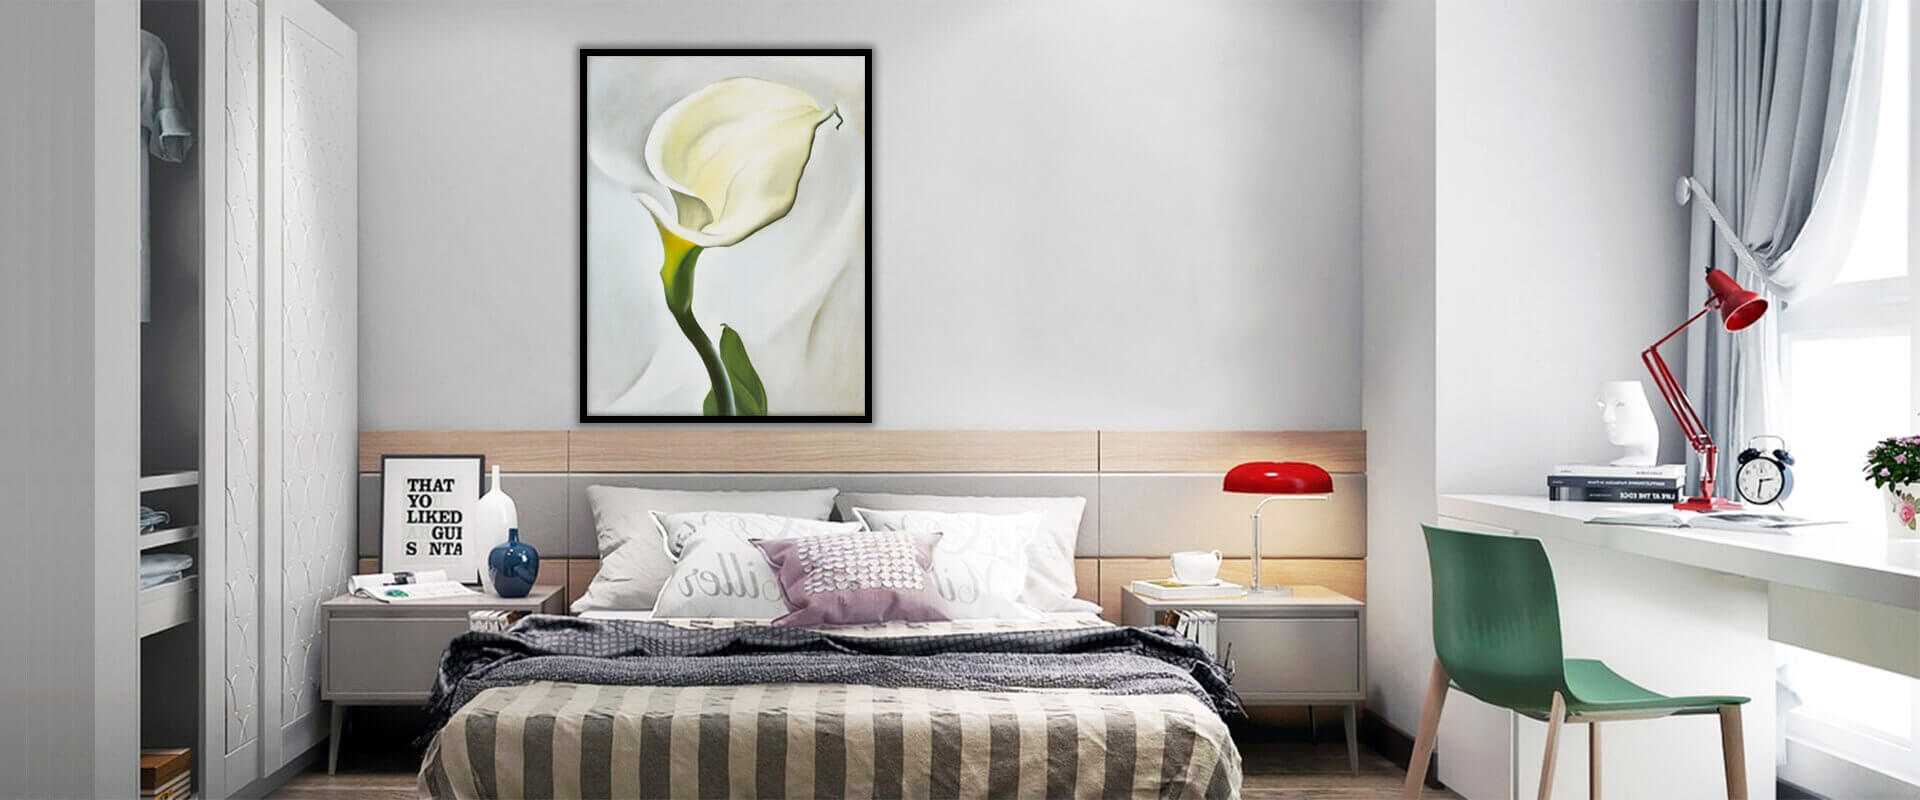 Bedroom Art Décor | Buy Posters, Frames, Canvas, Digital Art & Large Size Prints